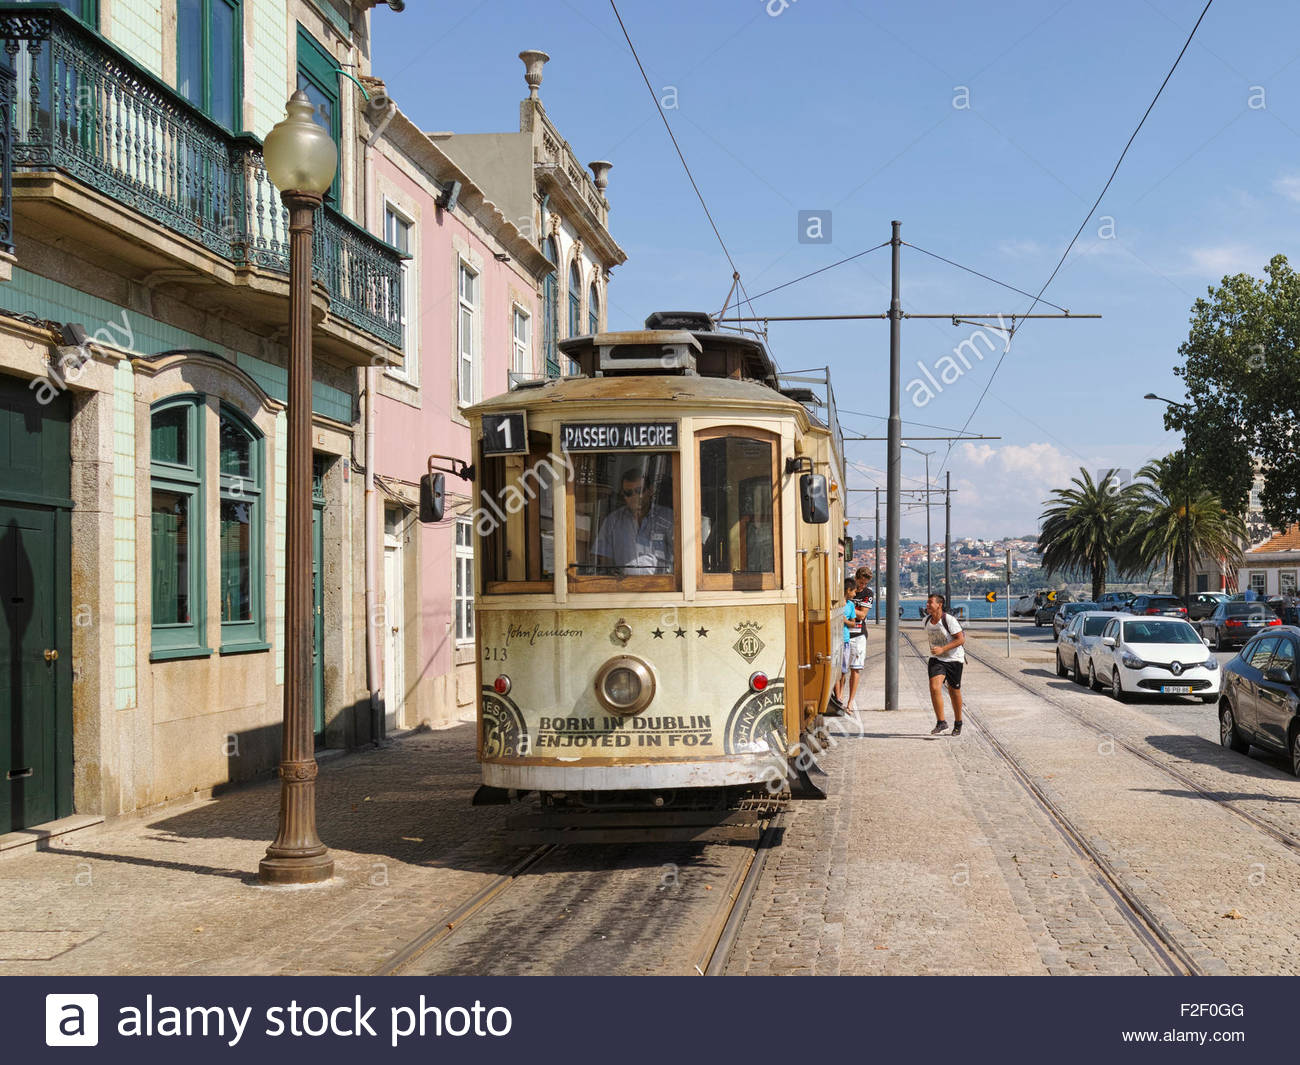 tram-number-1-arriving-at-passeio-allegre-the-stop-for-foz-do-douro-F2F0GG.jpg